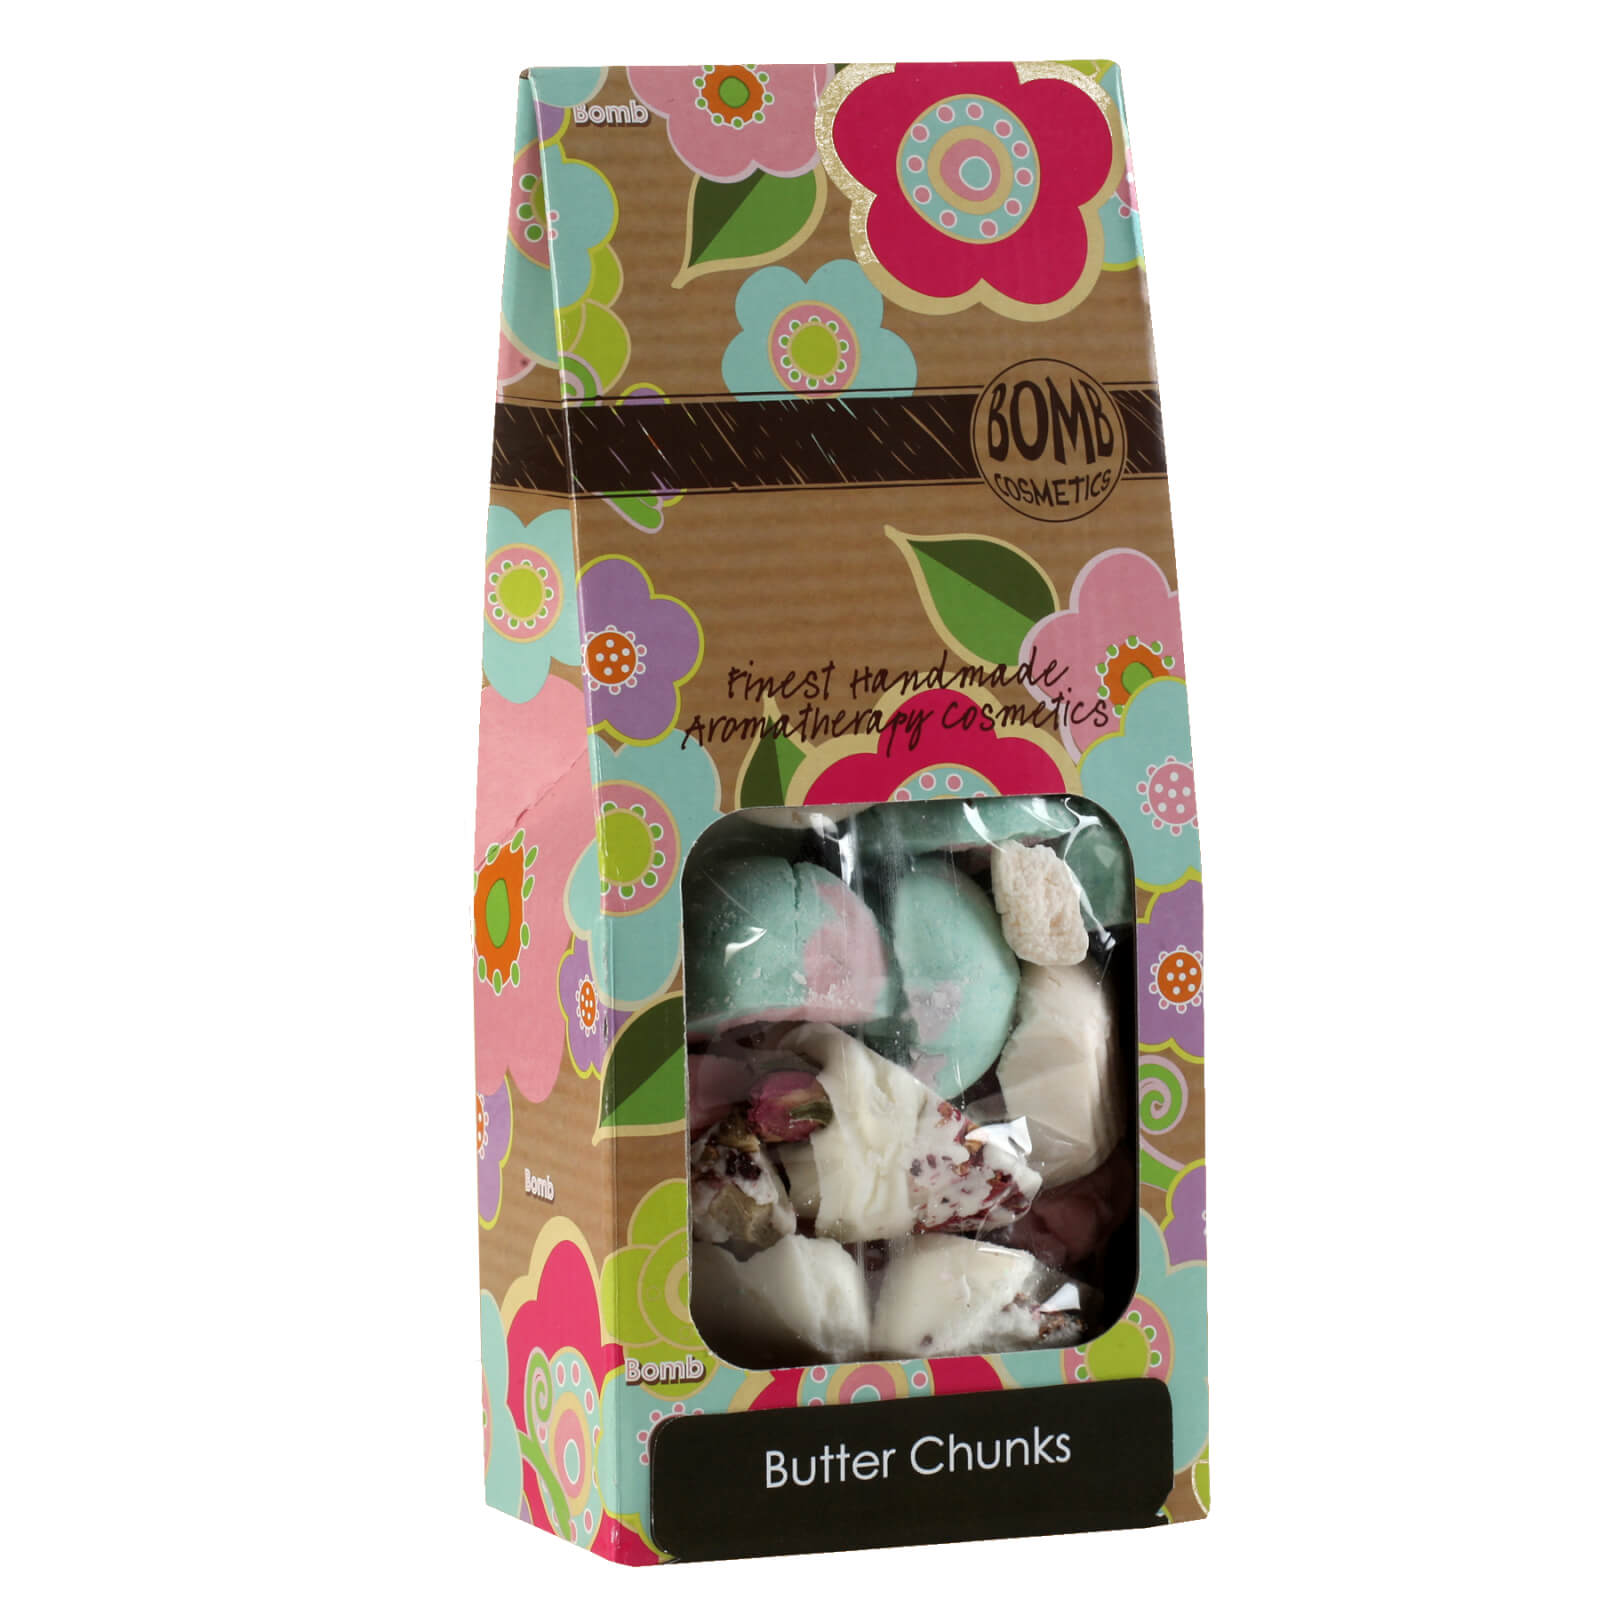 Bomb Cosmetics Butter Chunks Gift Pack